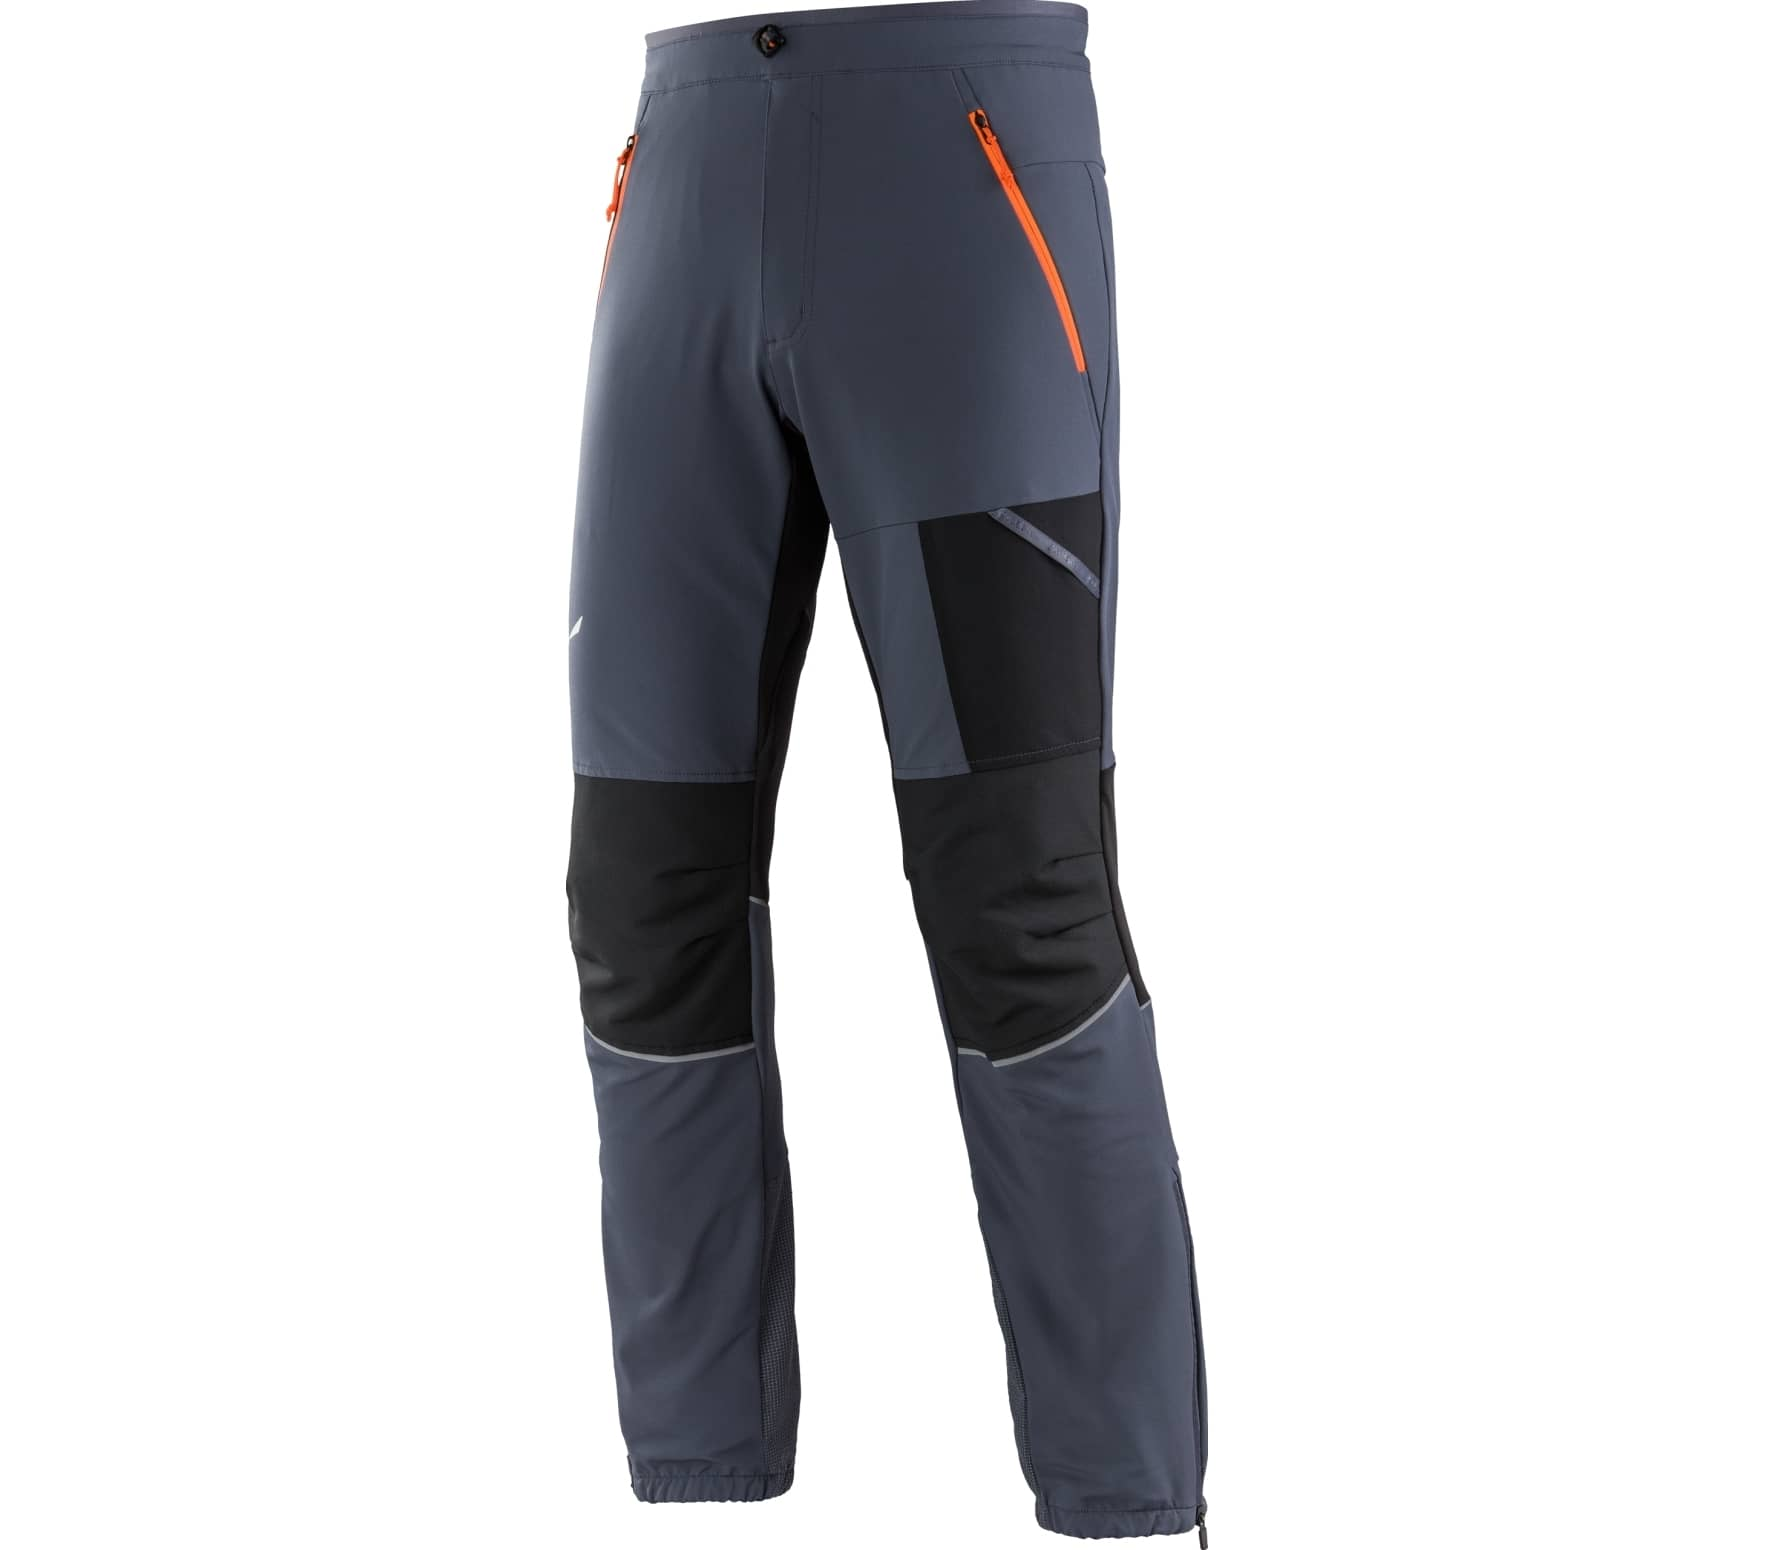 Salewa Sesvenna 2 Dura Stretch men's skis pants(dark grey)